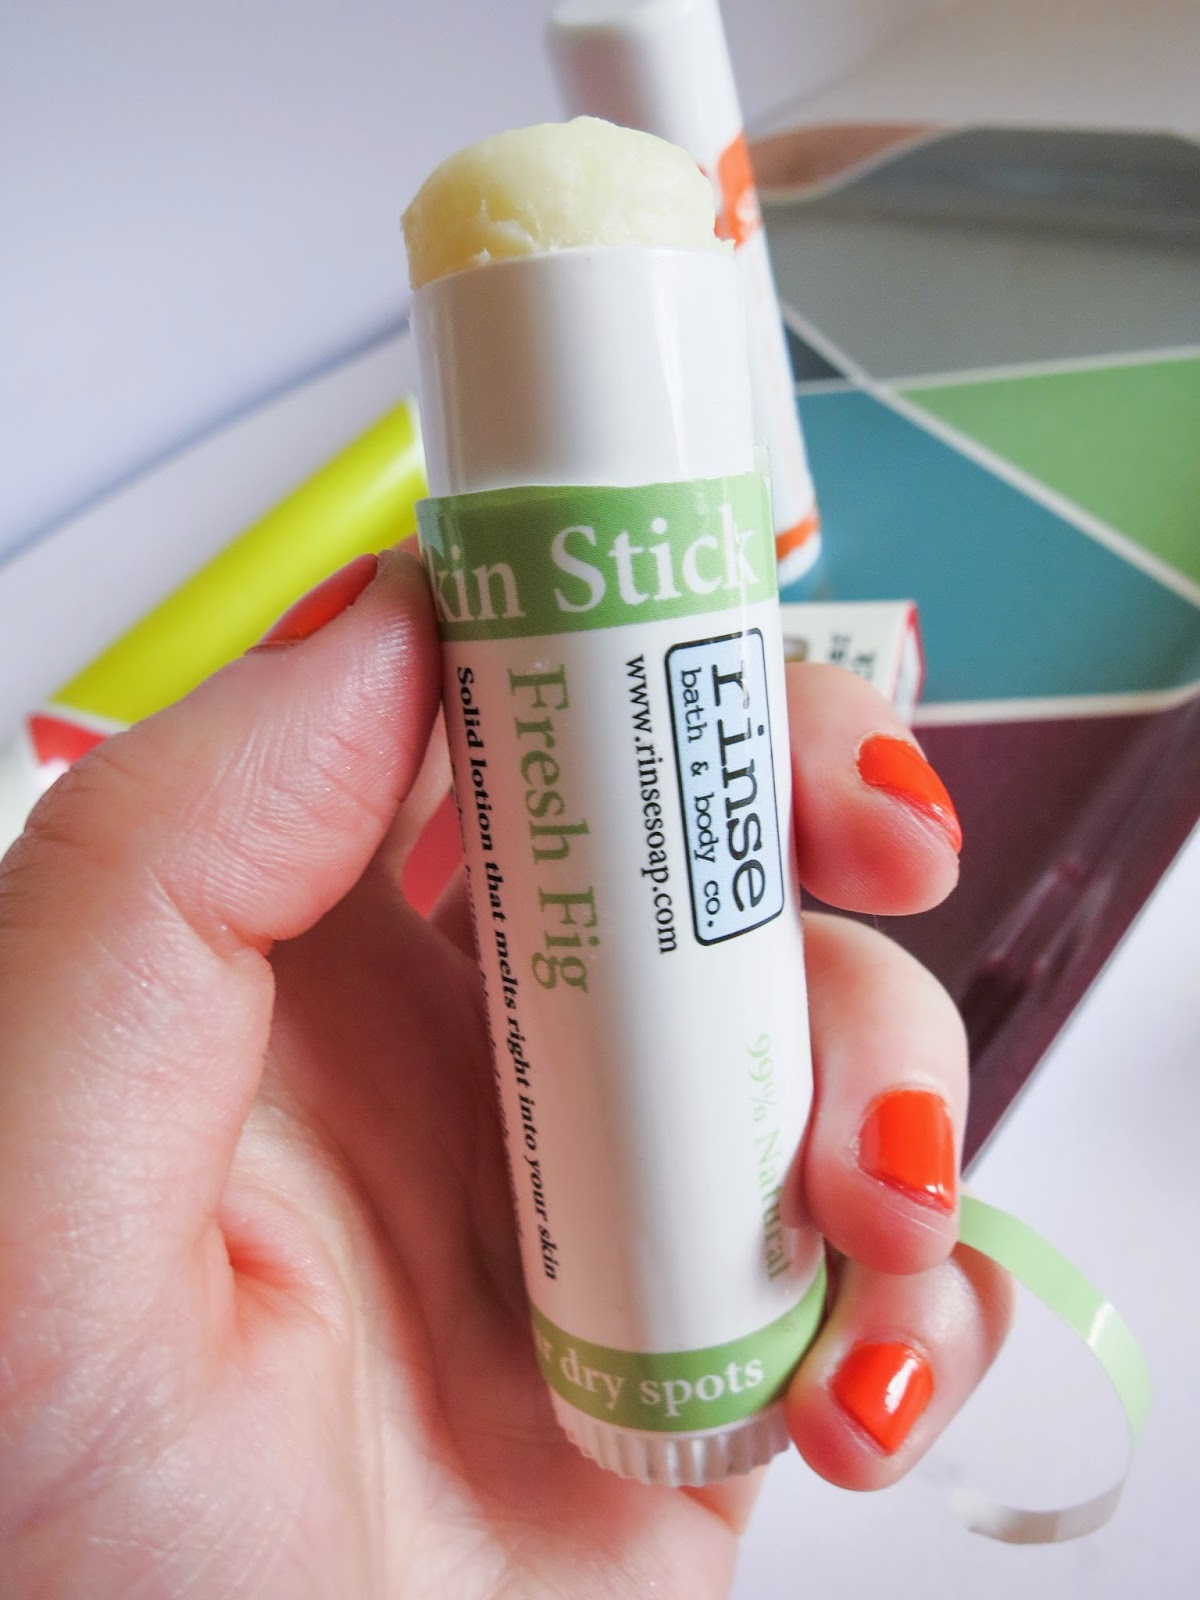 Rinse Soap Pucker Stick Body Lotion Natural Review